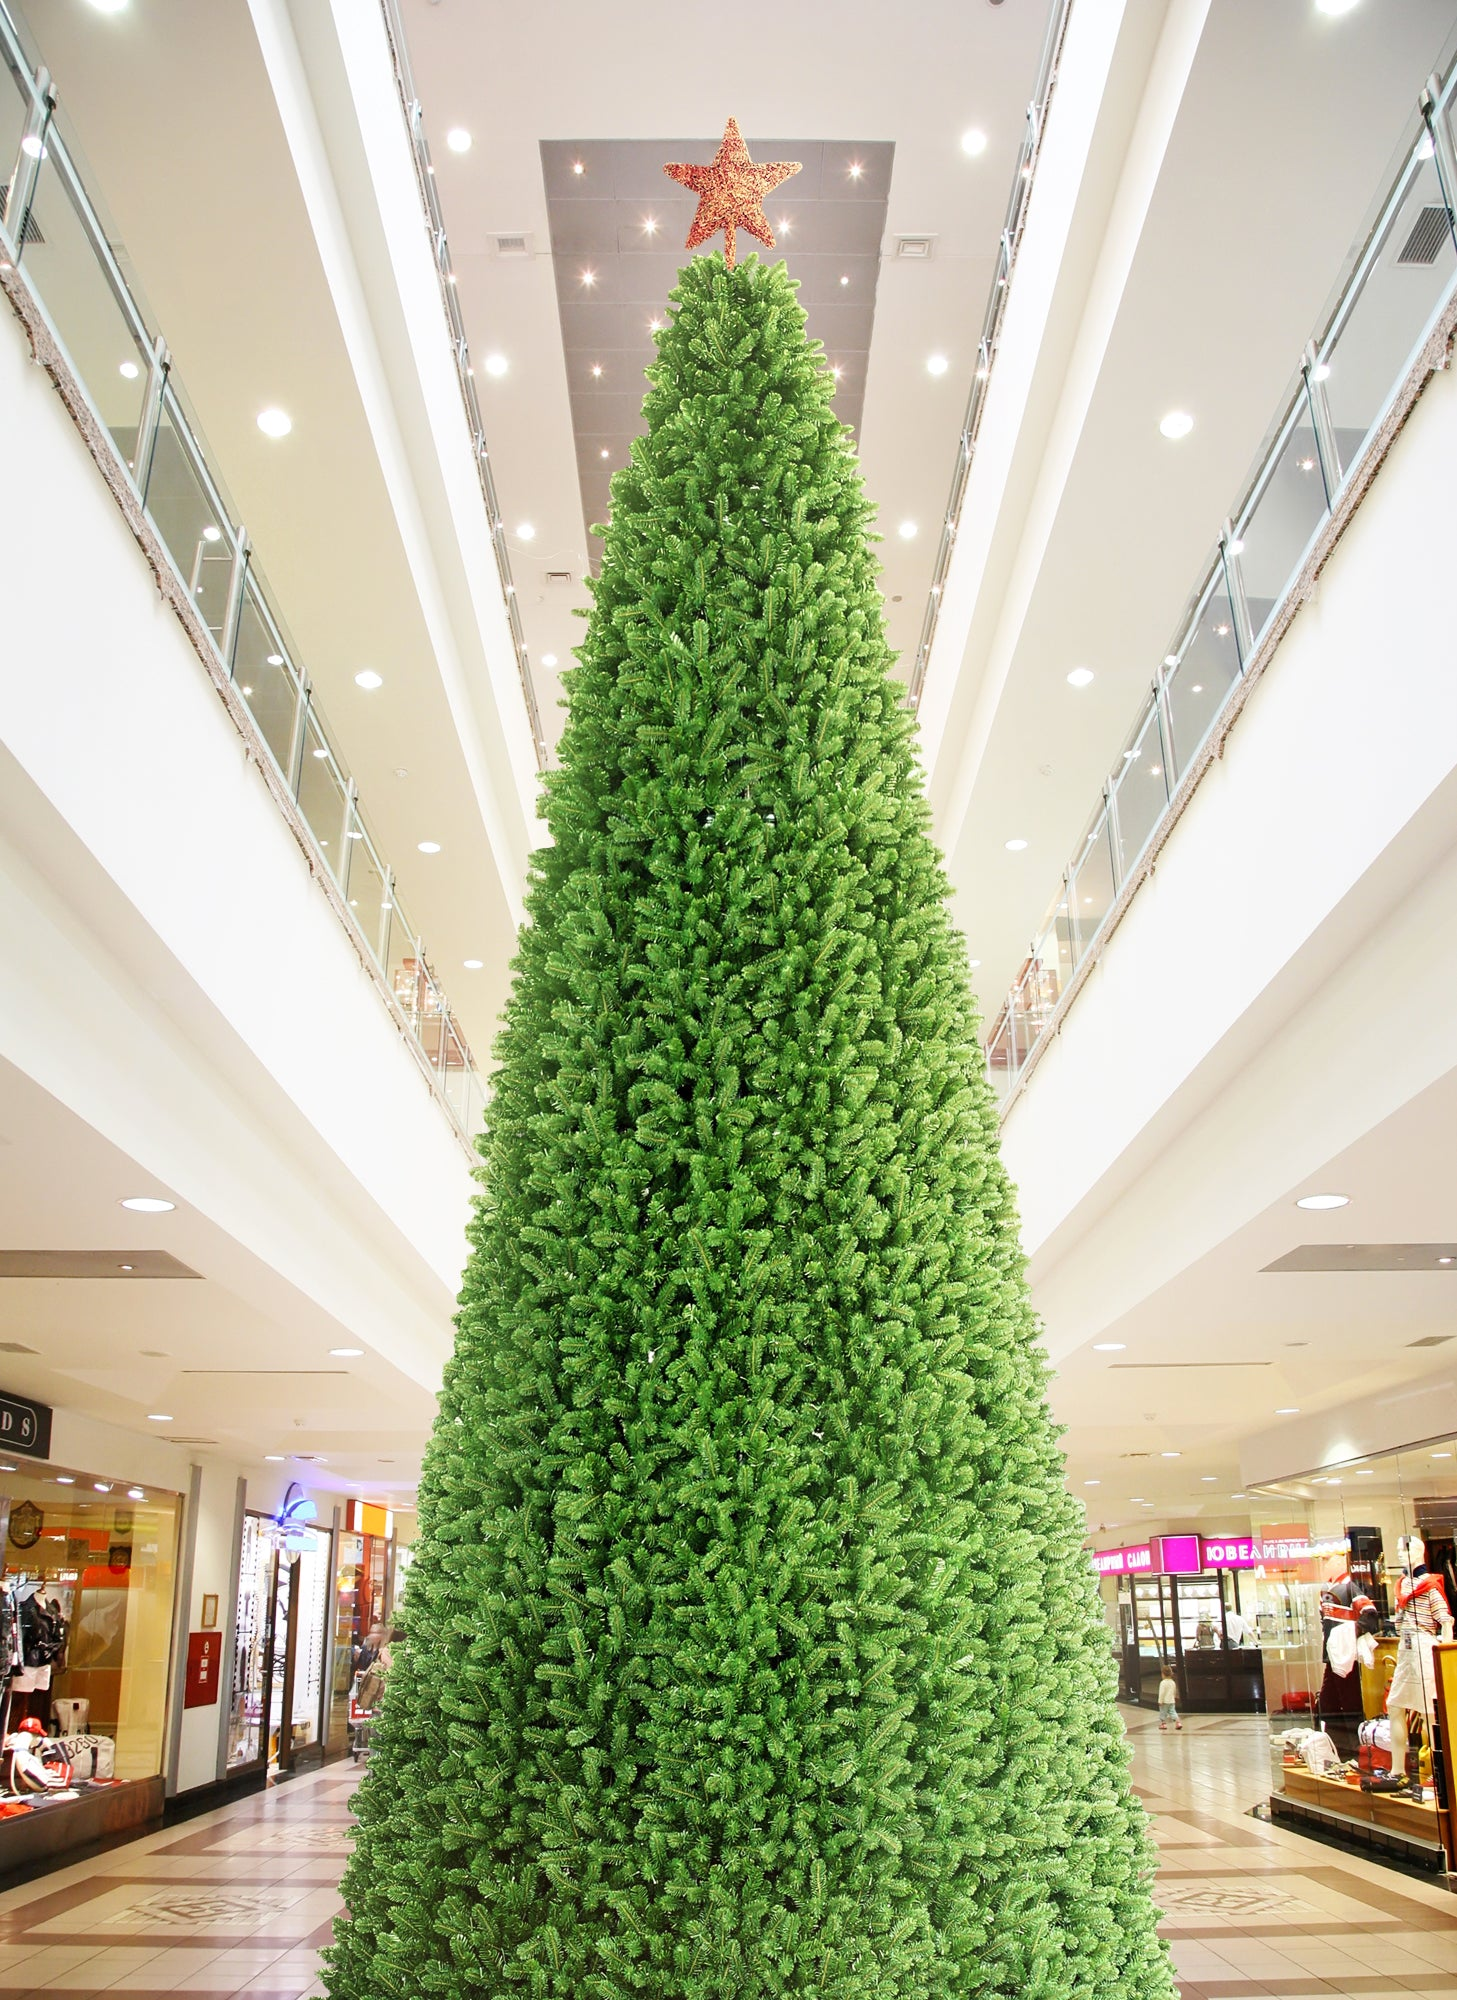 30 Foot Giant Commercial Artificial Christmas Tree With Warm White LED Lights